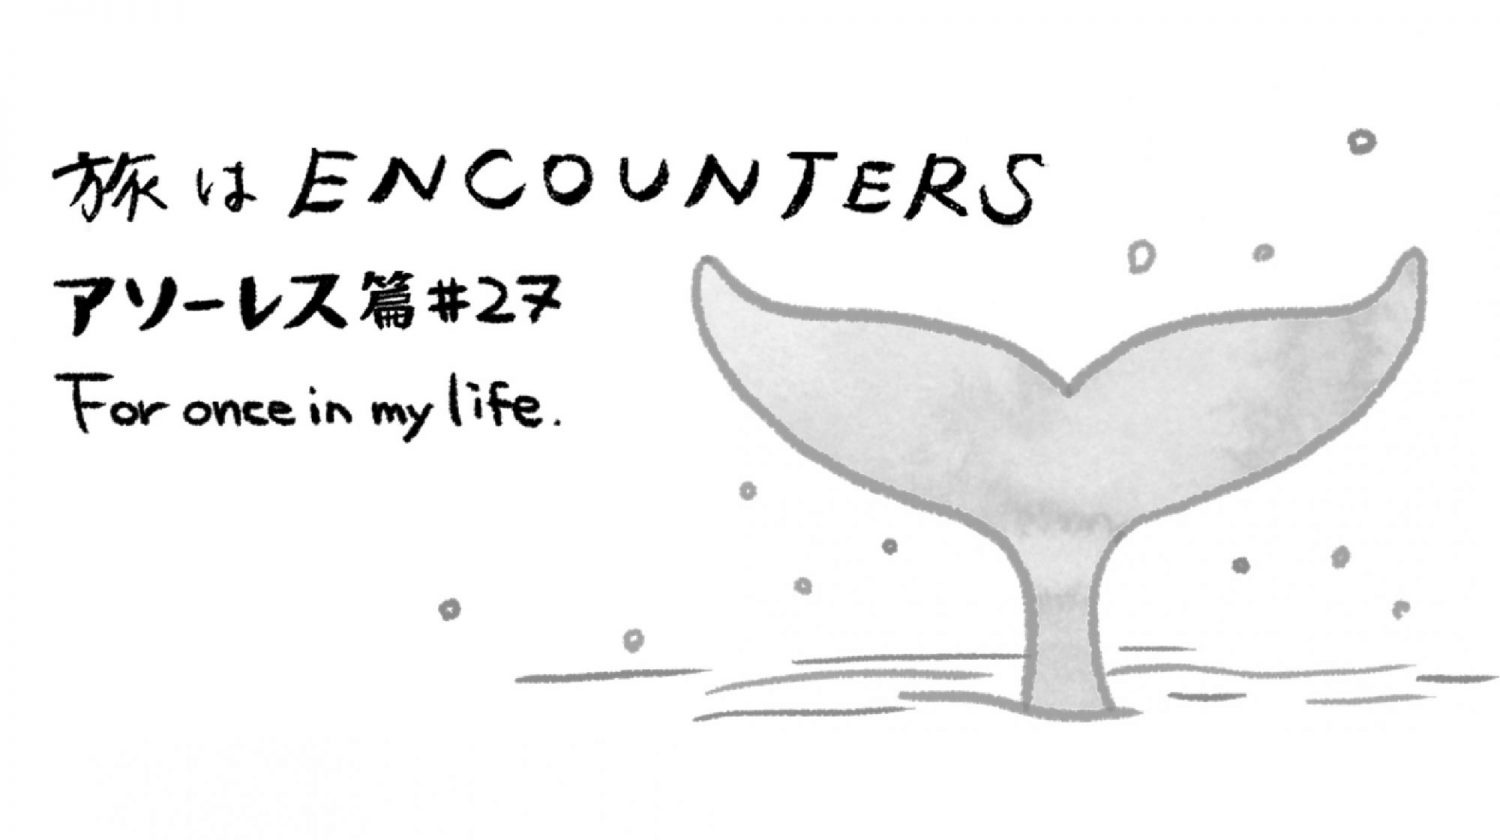 Travel is ENCOUNTERS (アソーレス篇) #27